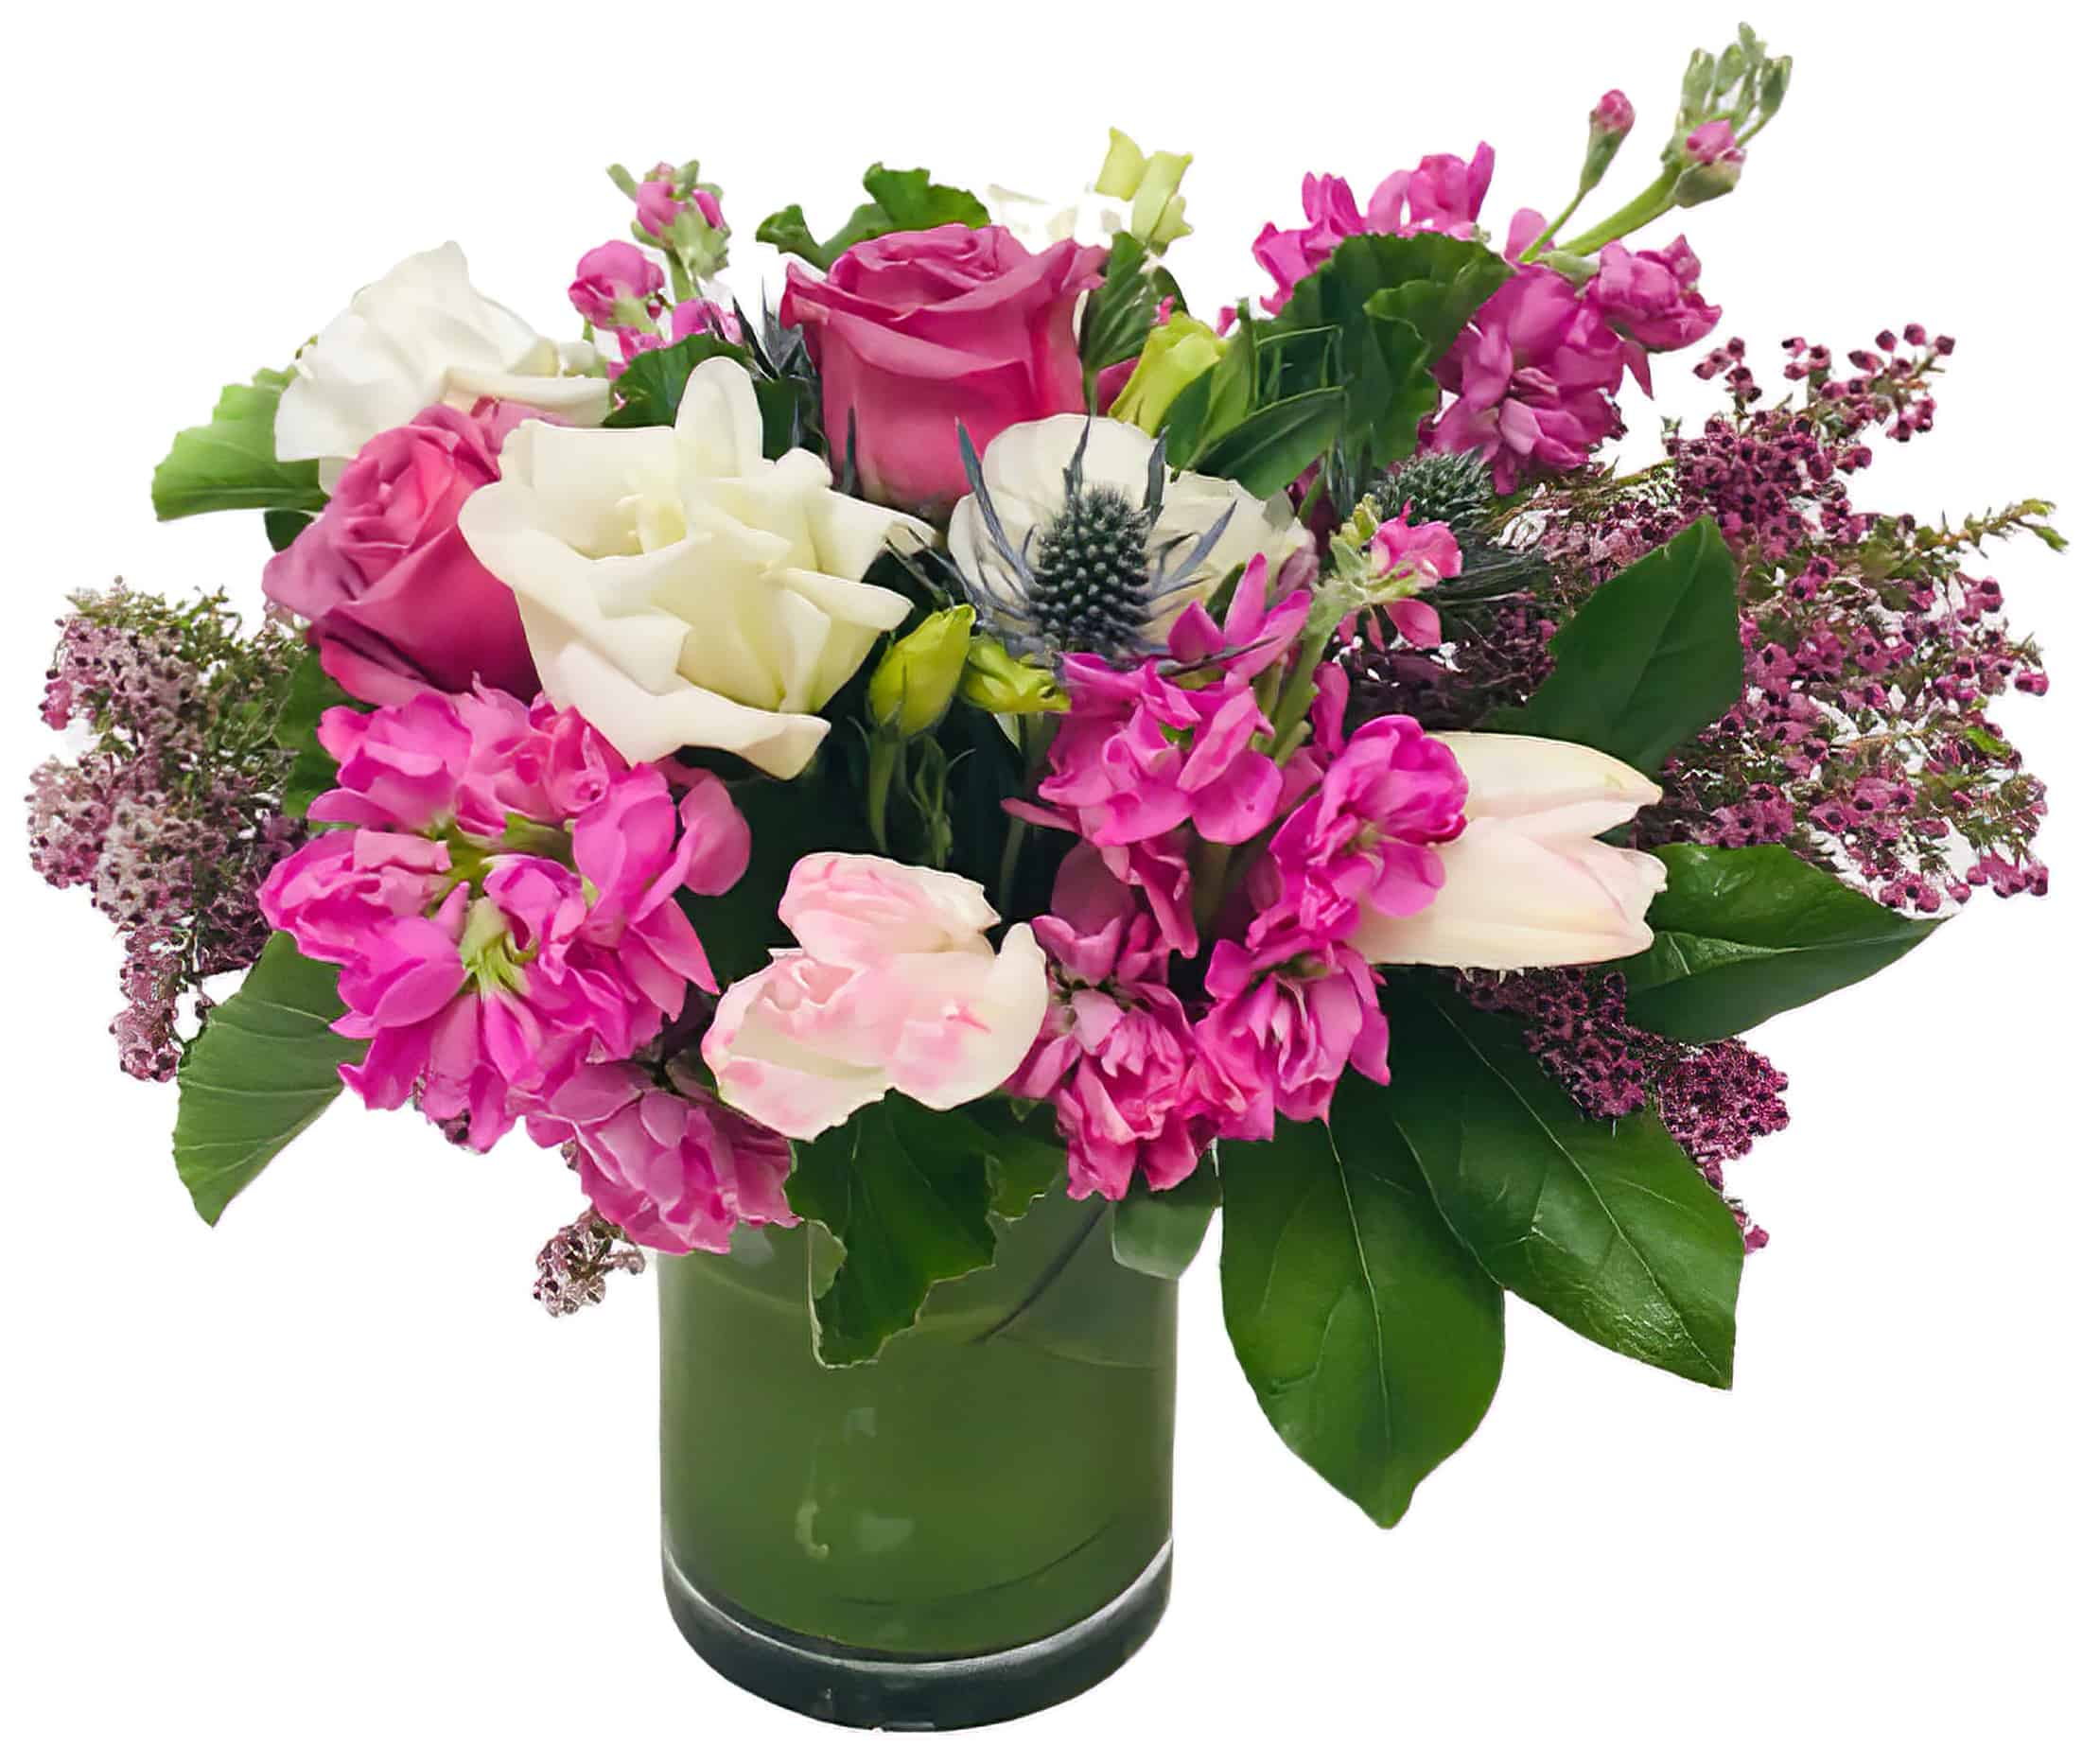 Poppin' Pinks Flower Arrangement